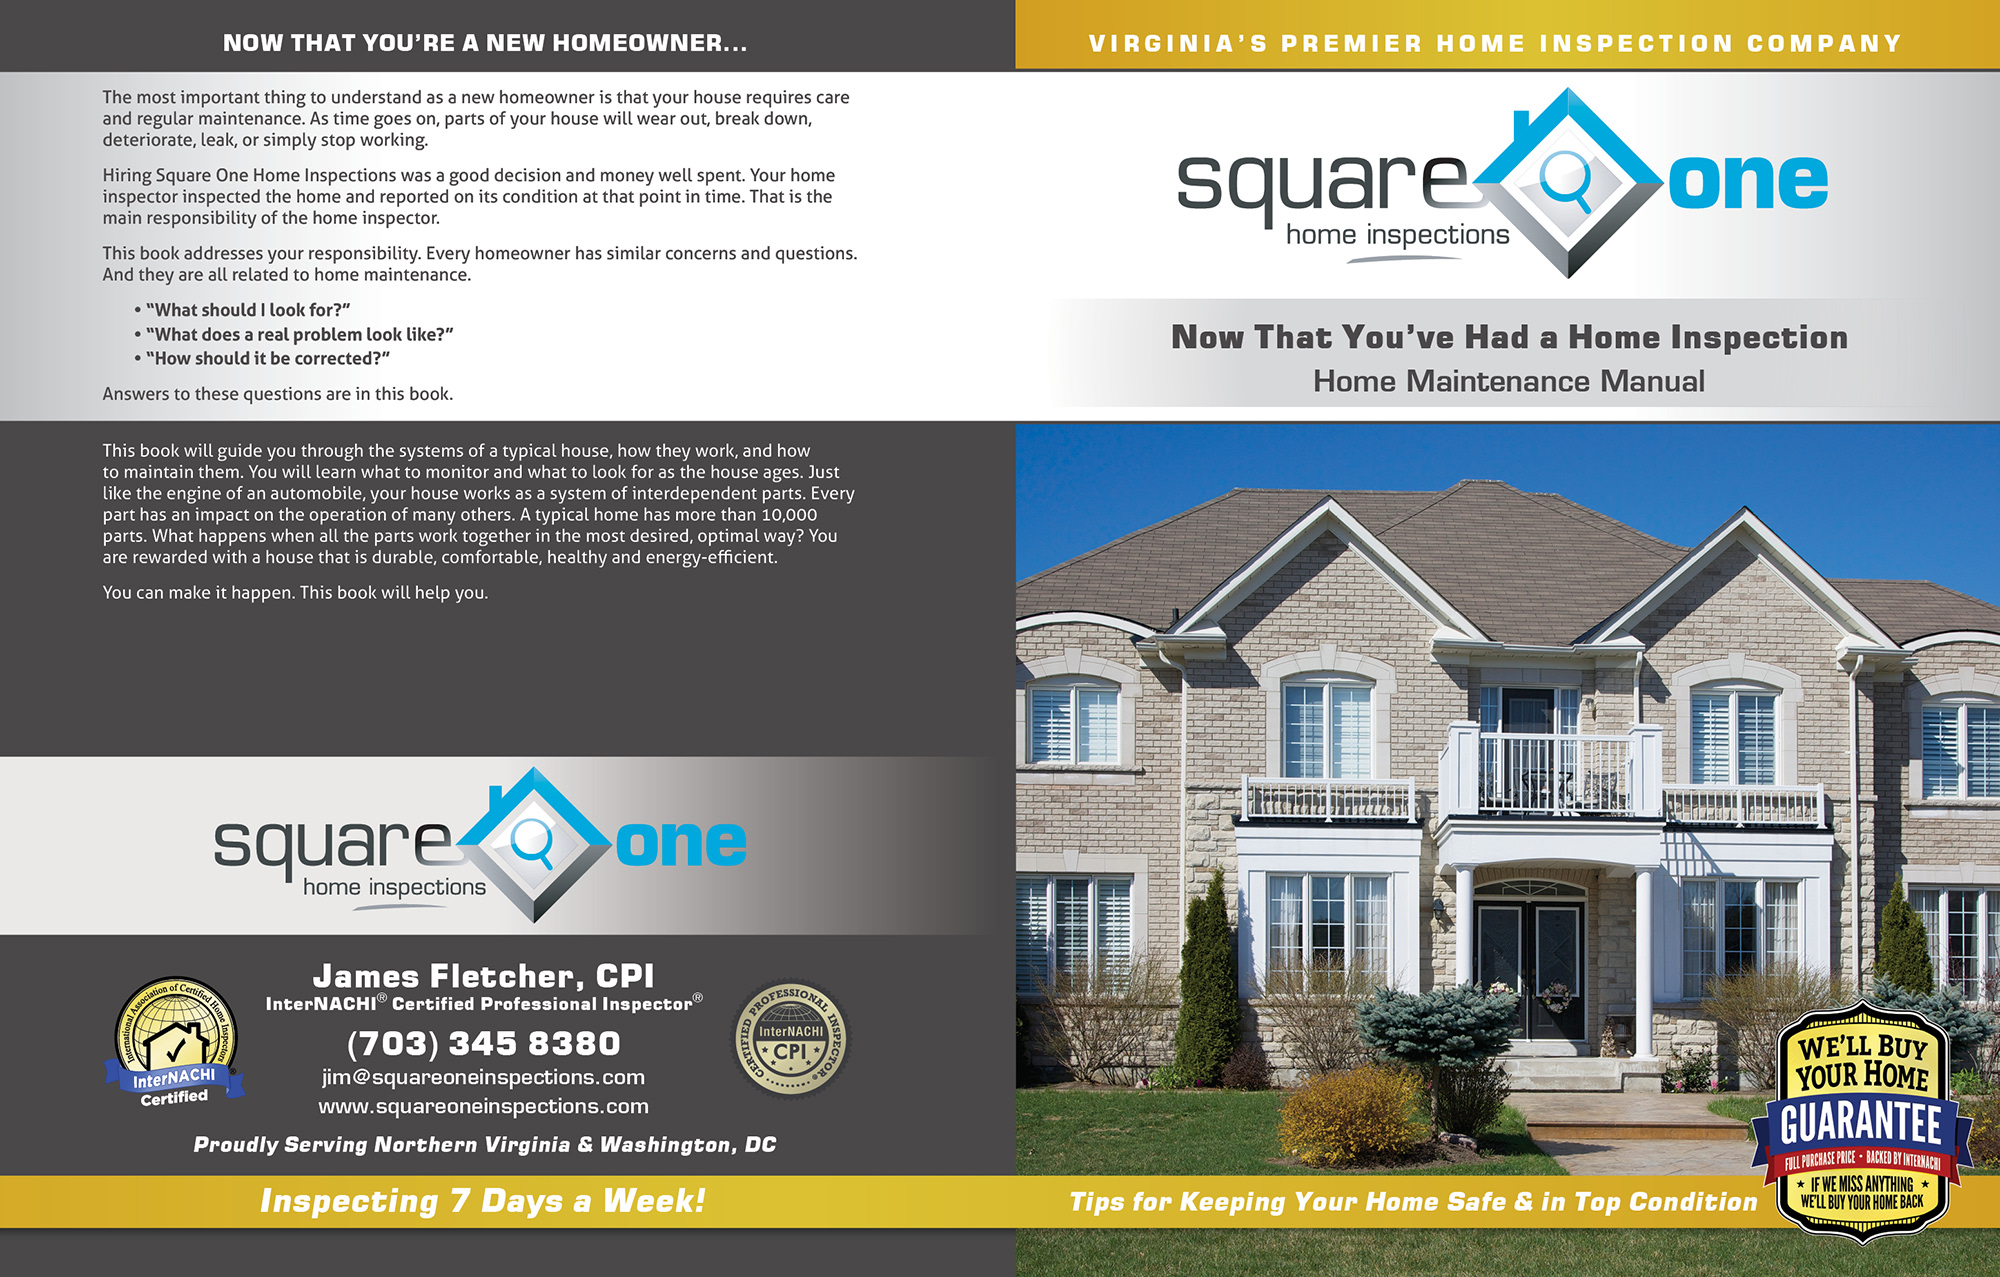 Square One Home Inspections book